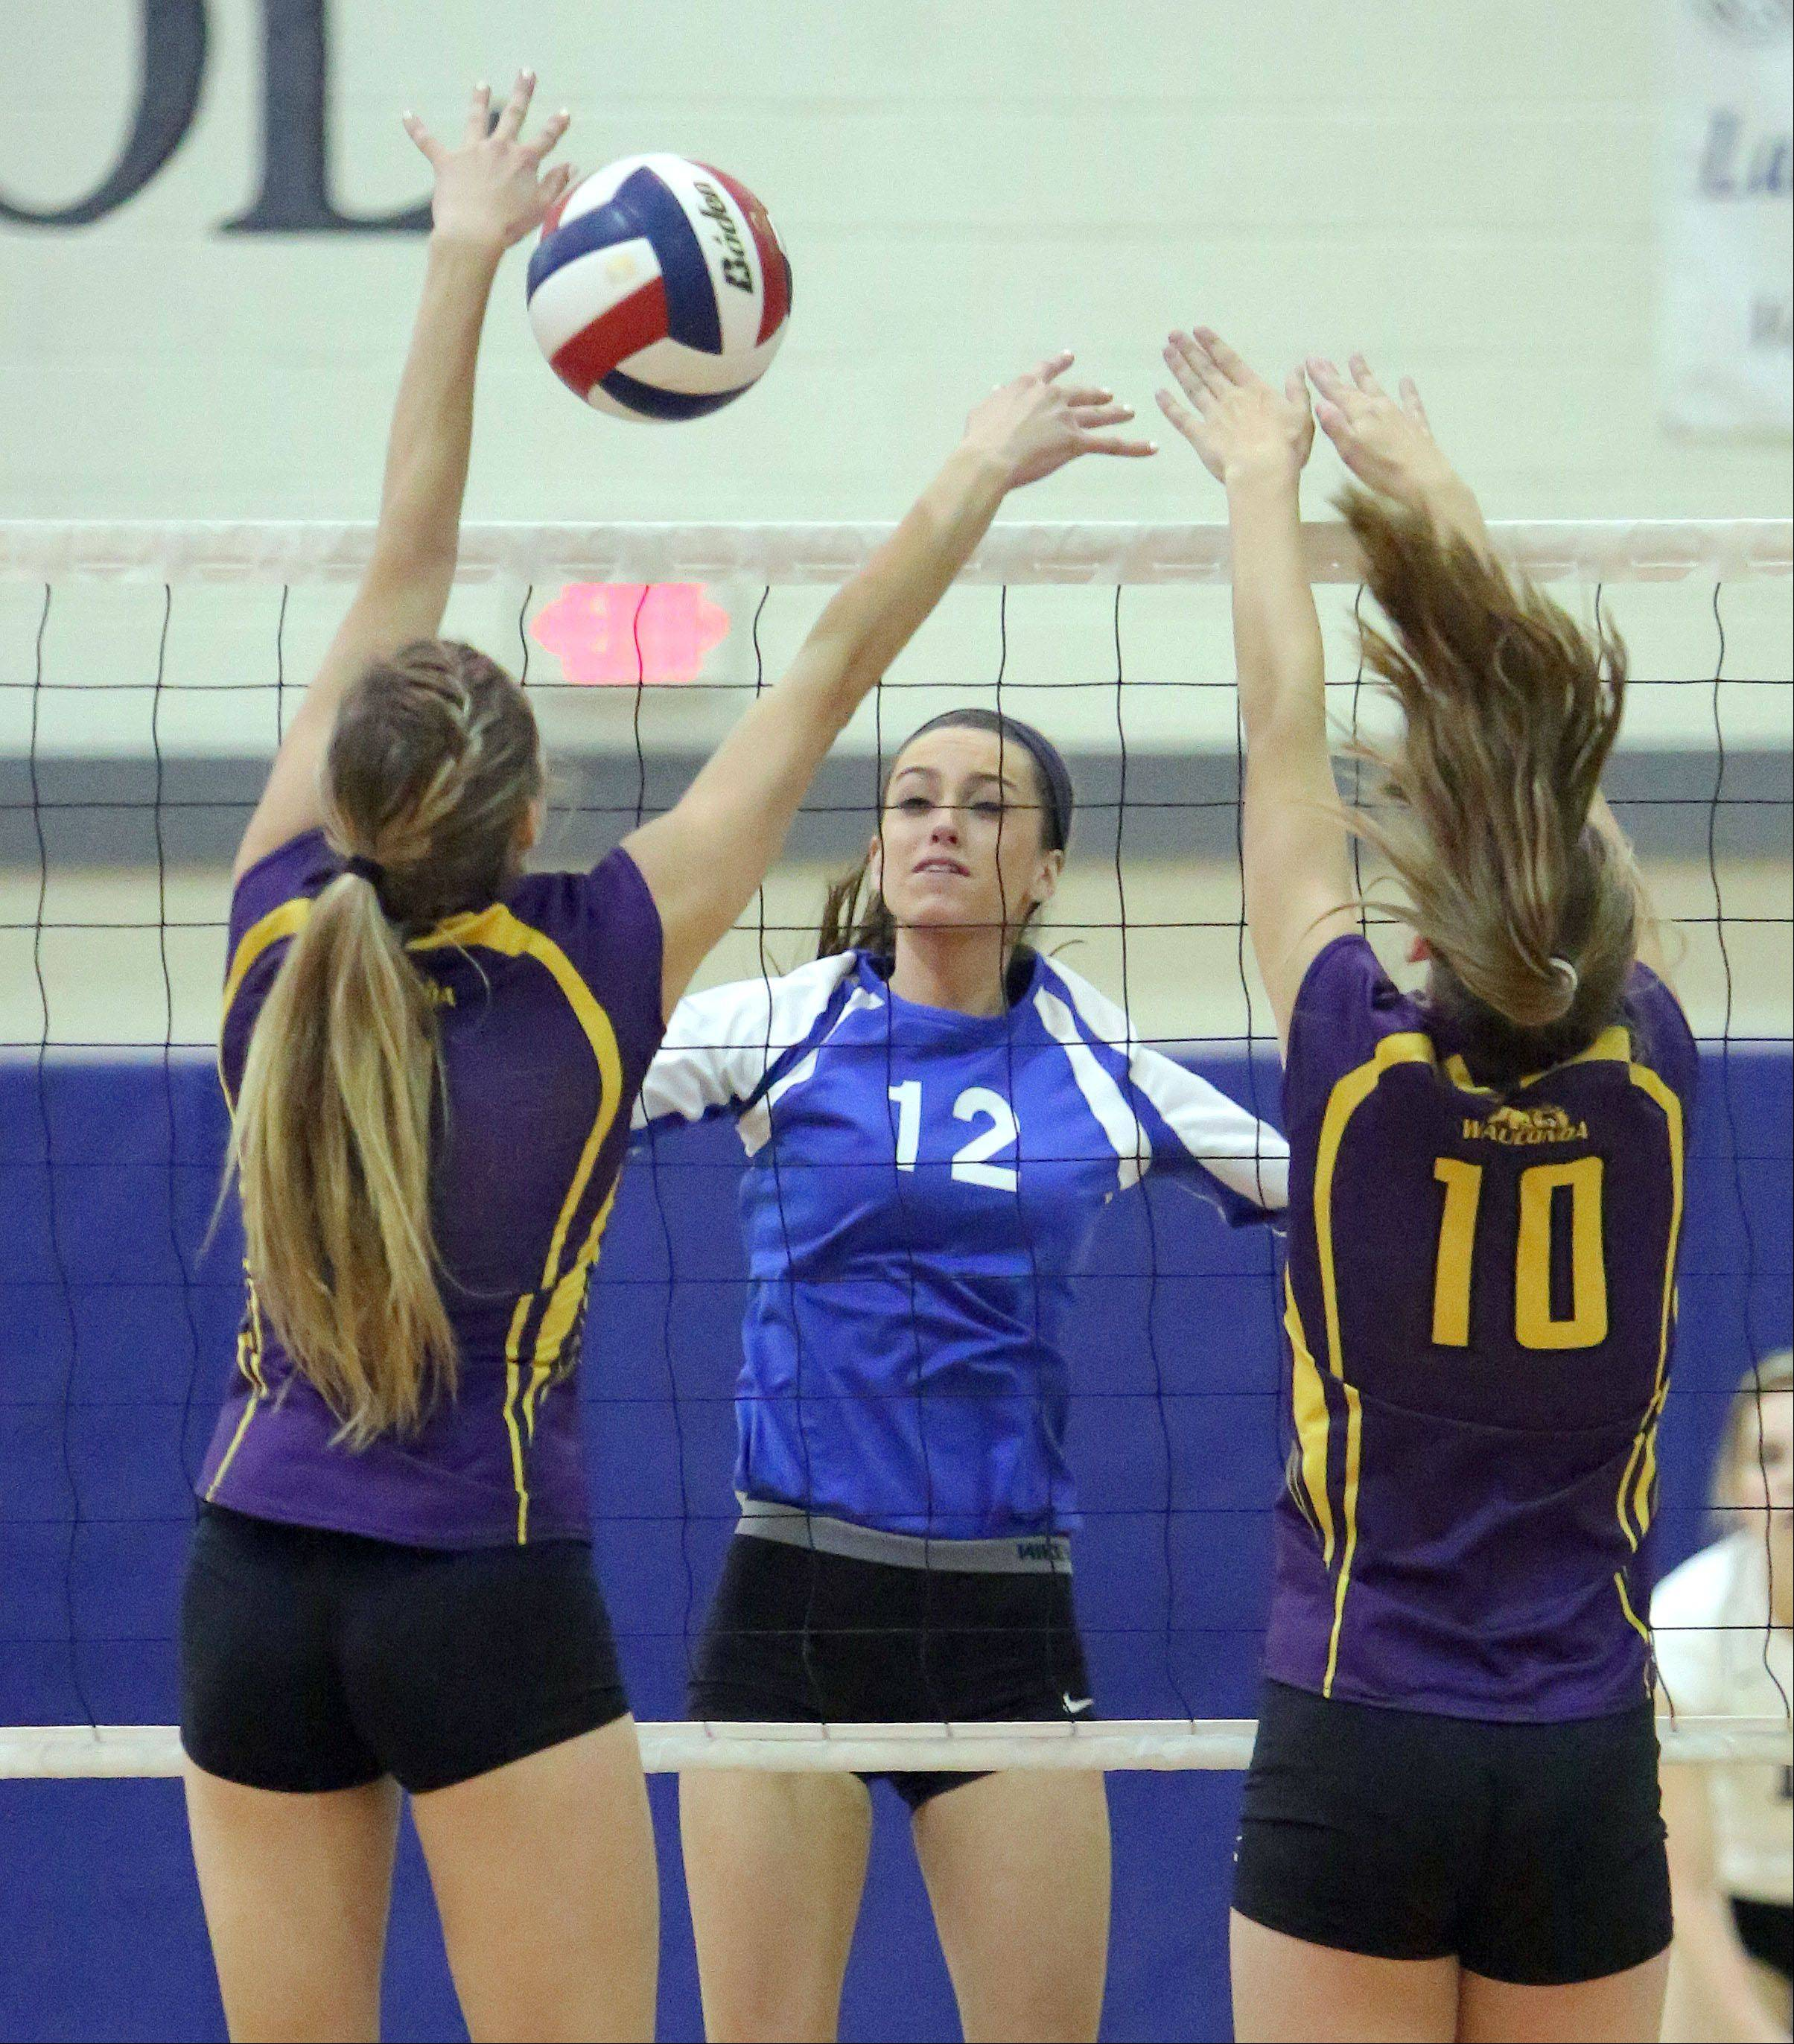 Lakes' Haley Halberg spikes one at Wauconda's Susan Karhoff, left, and Haley Redmann on Wednesday night at Lakes.